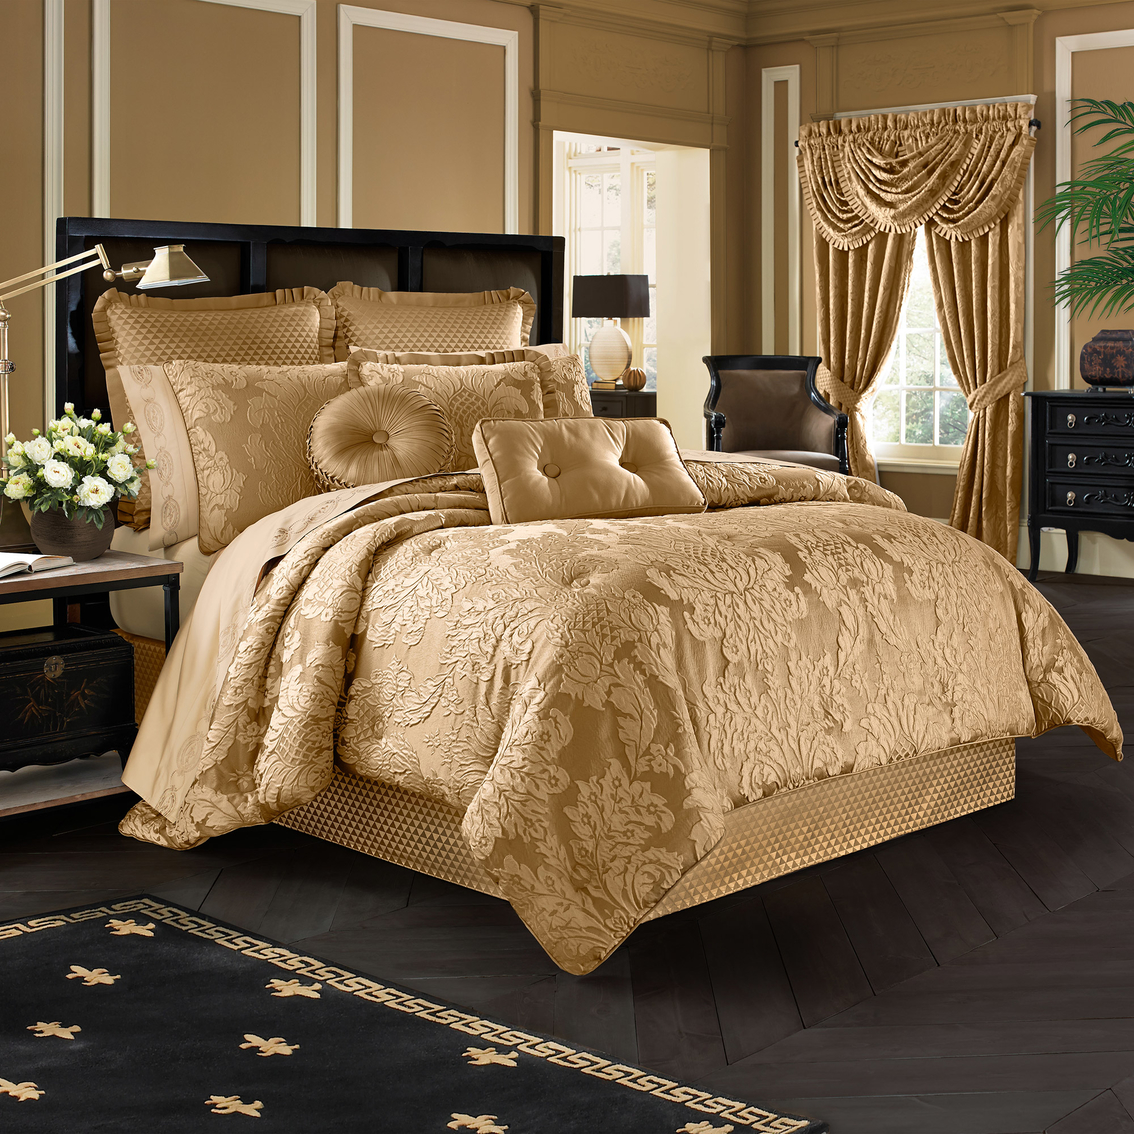 J Queen New York Concord Gold Comforter Set Bedding Sets Household Shop The Exchange